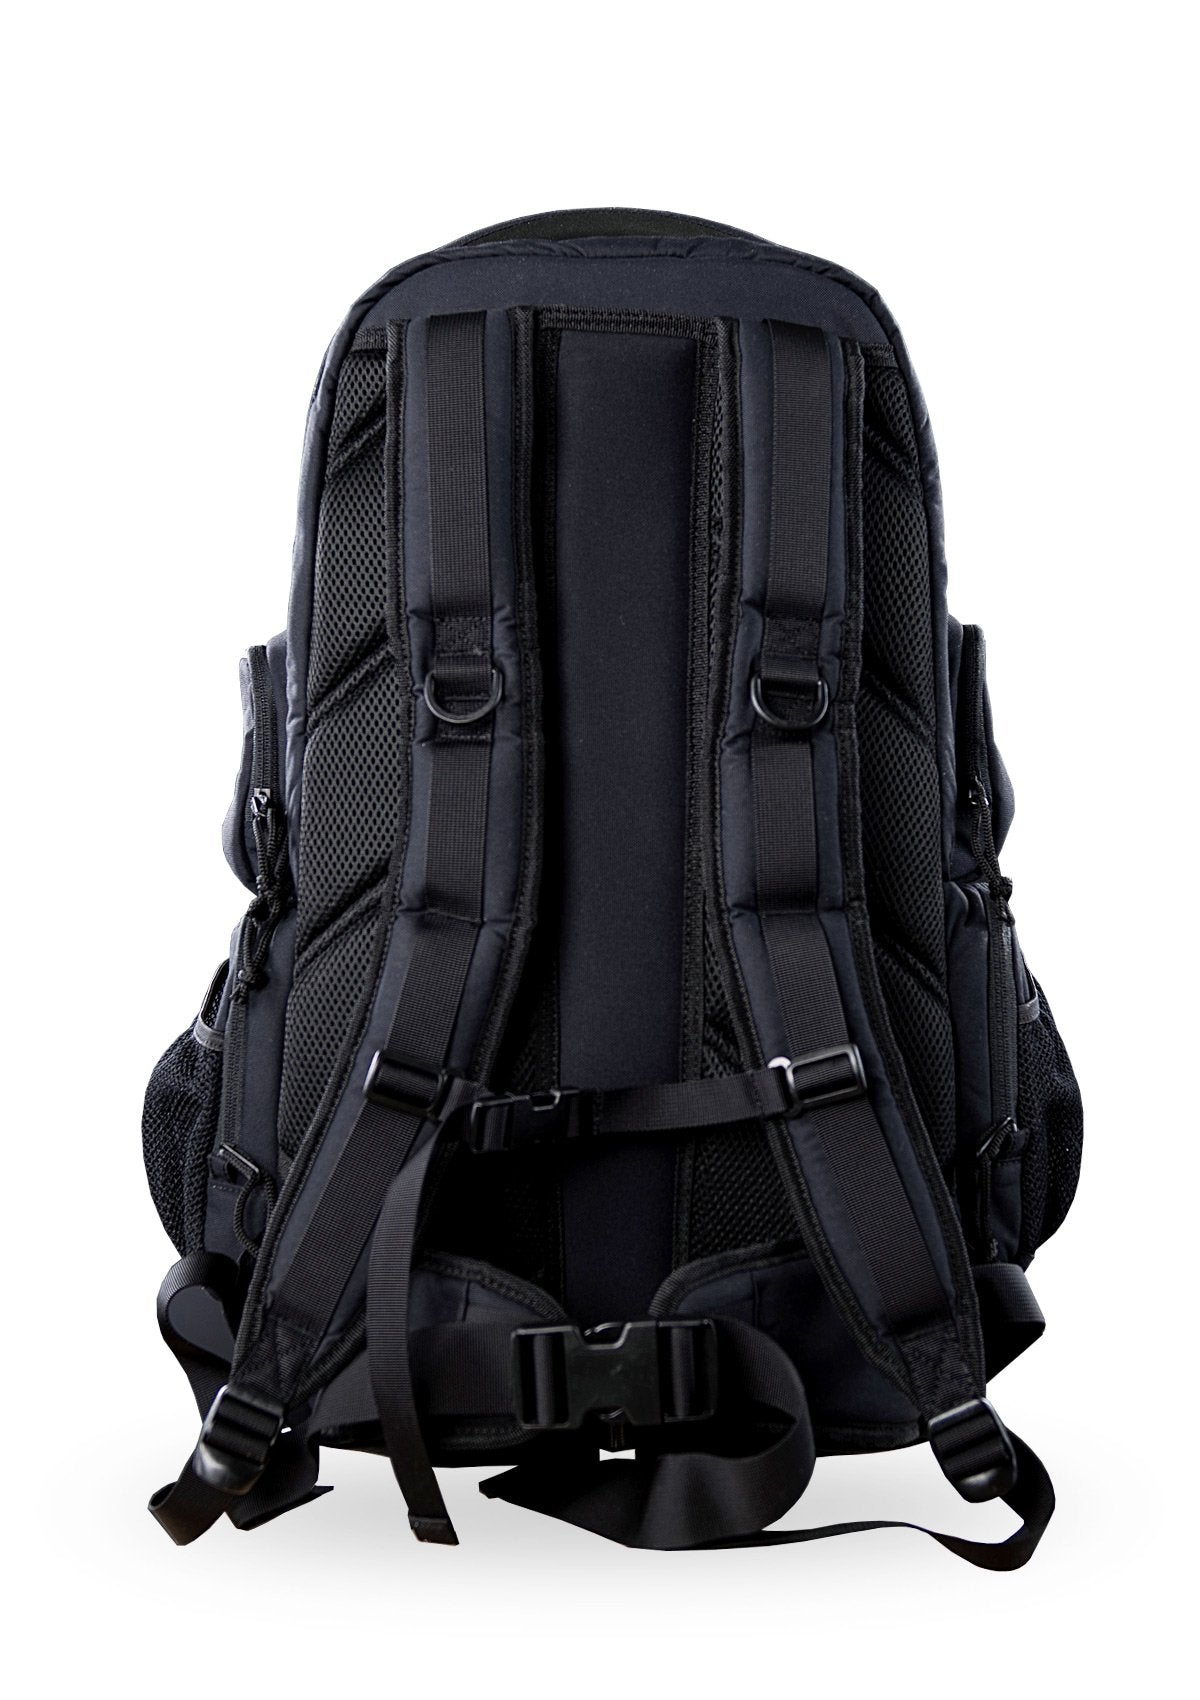 needessentials travel pack surfing black non branded